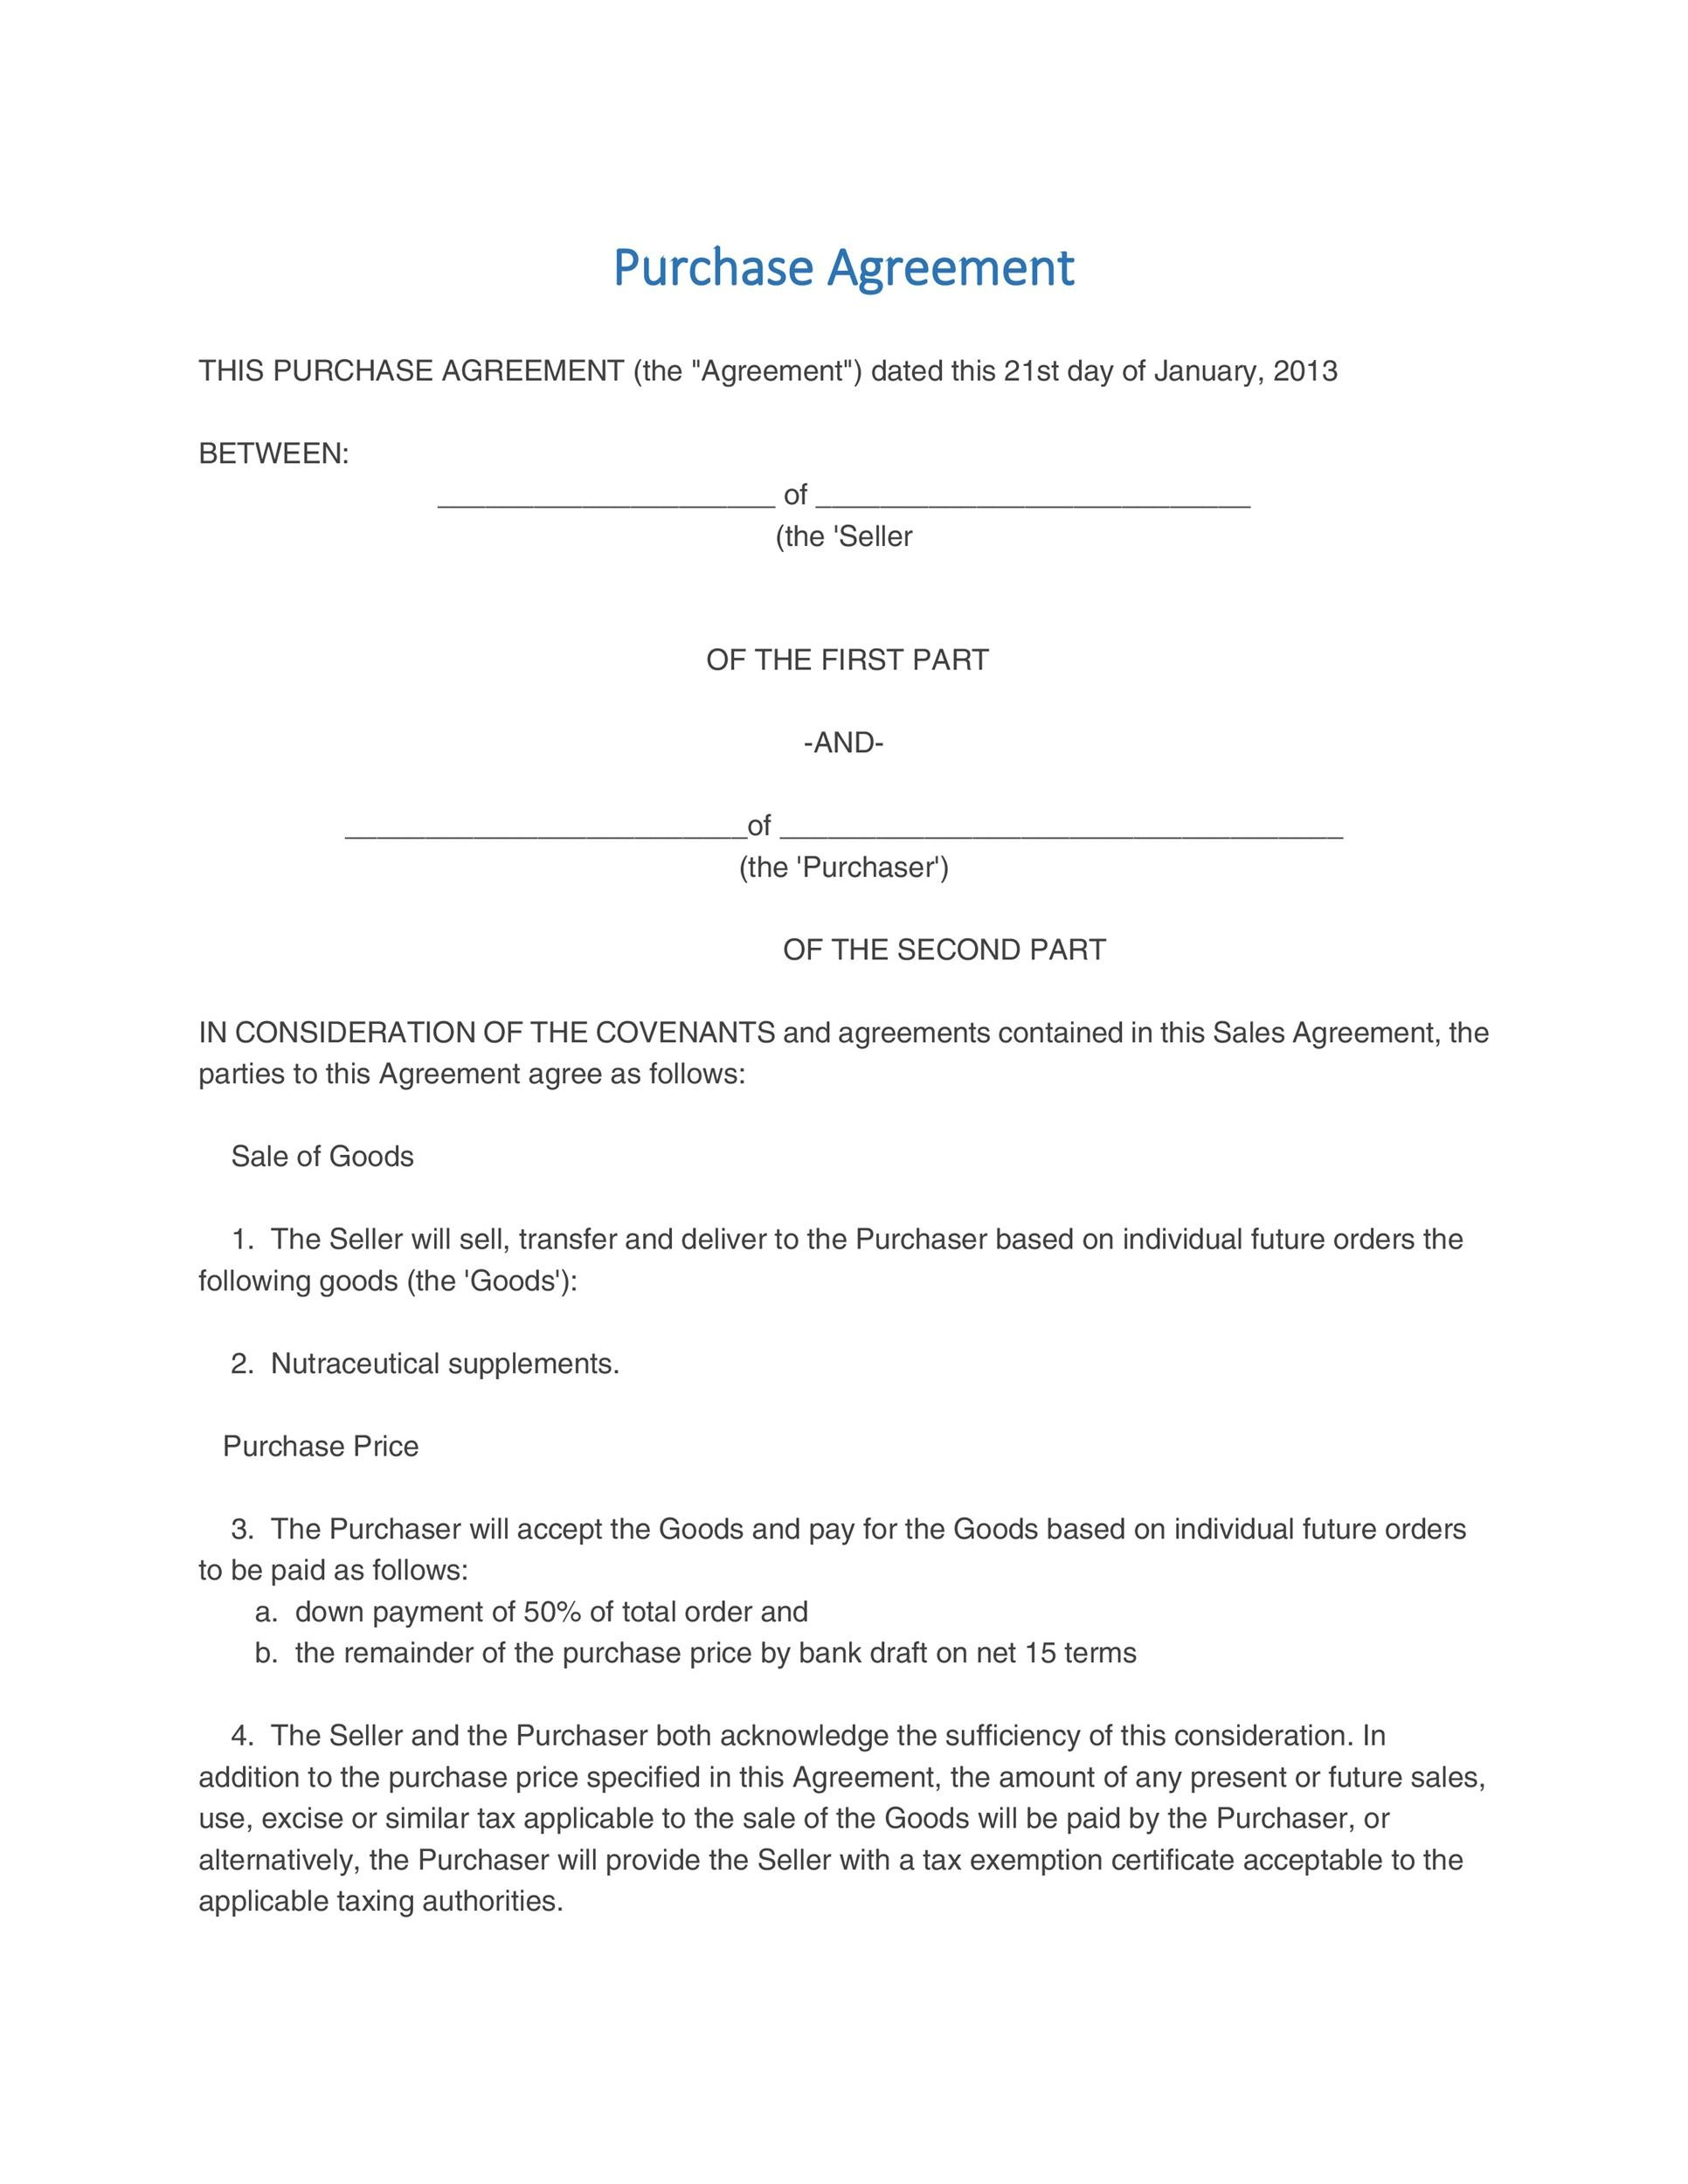 Simple Sales Contract. Purchase Agreement Template 20 37 Simple ...